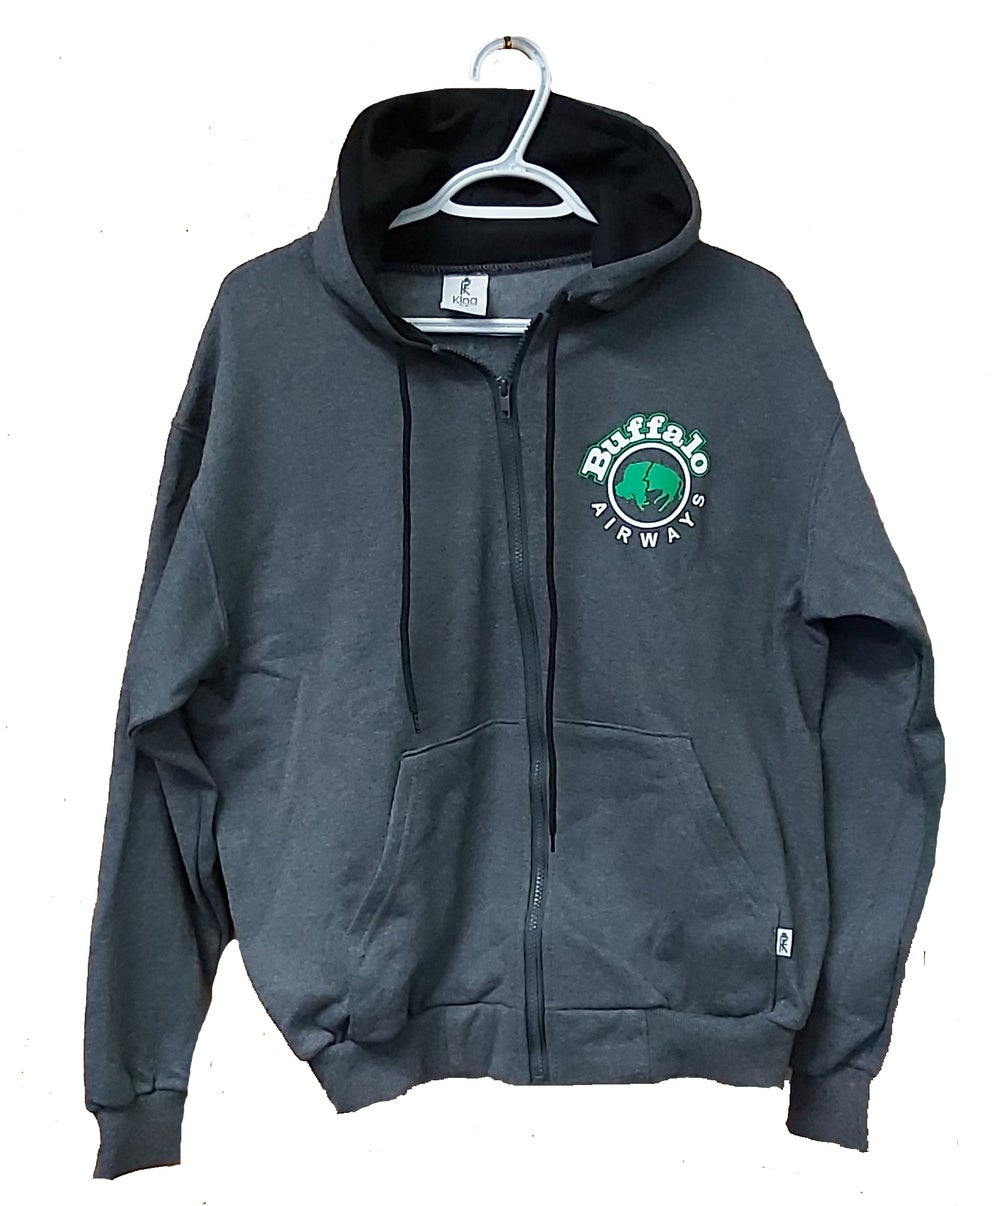 Image of Original Buffalo Zip Up Hoodie